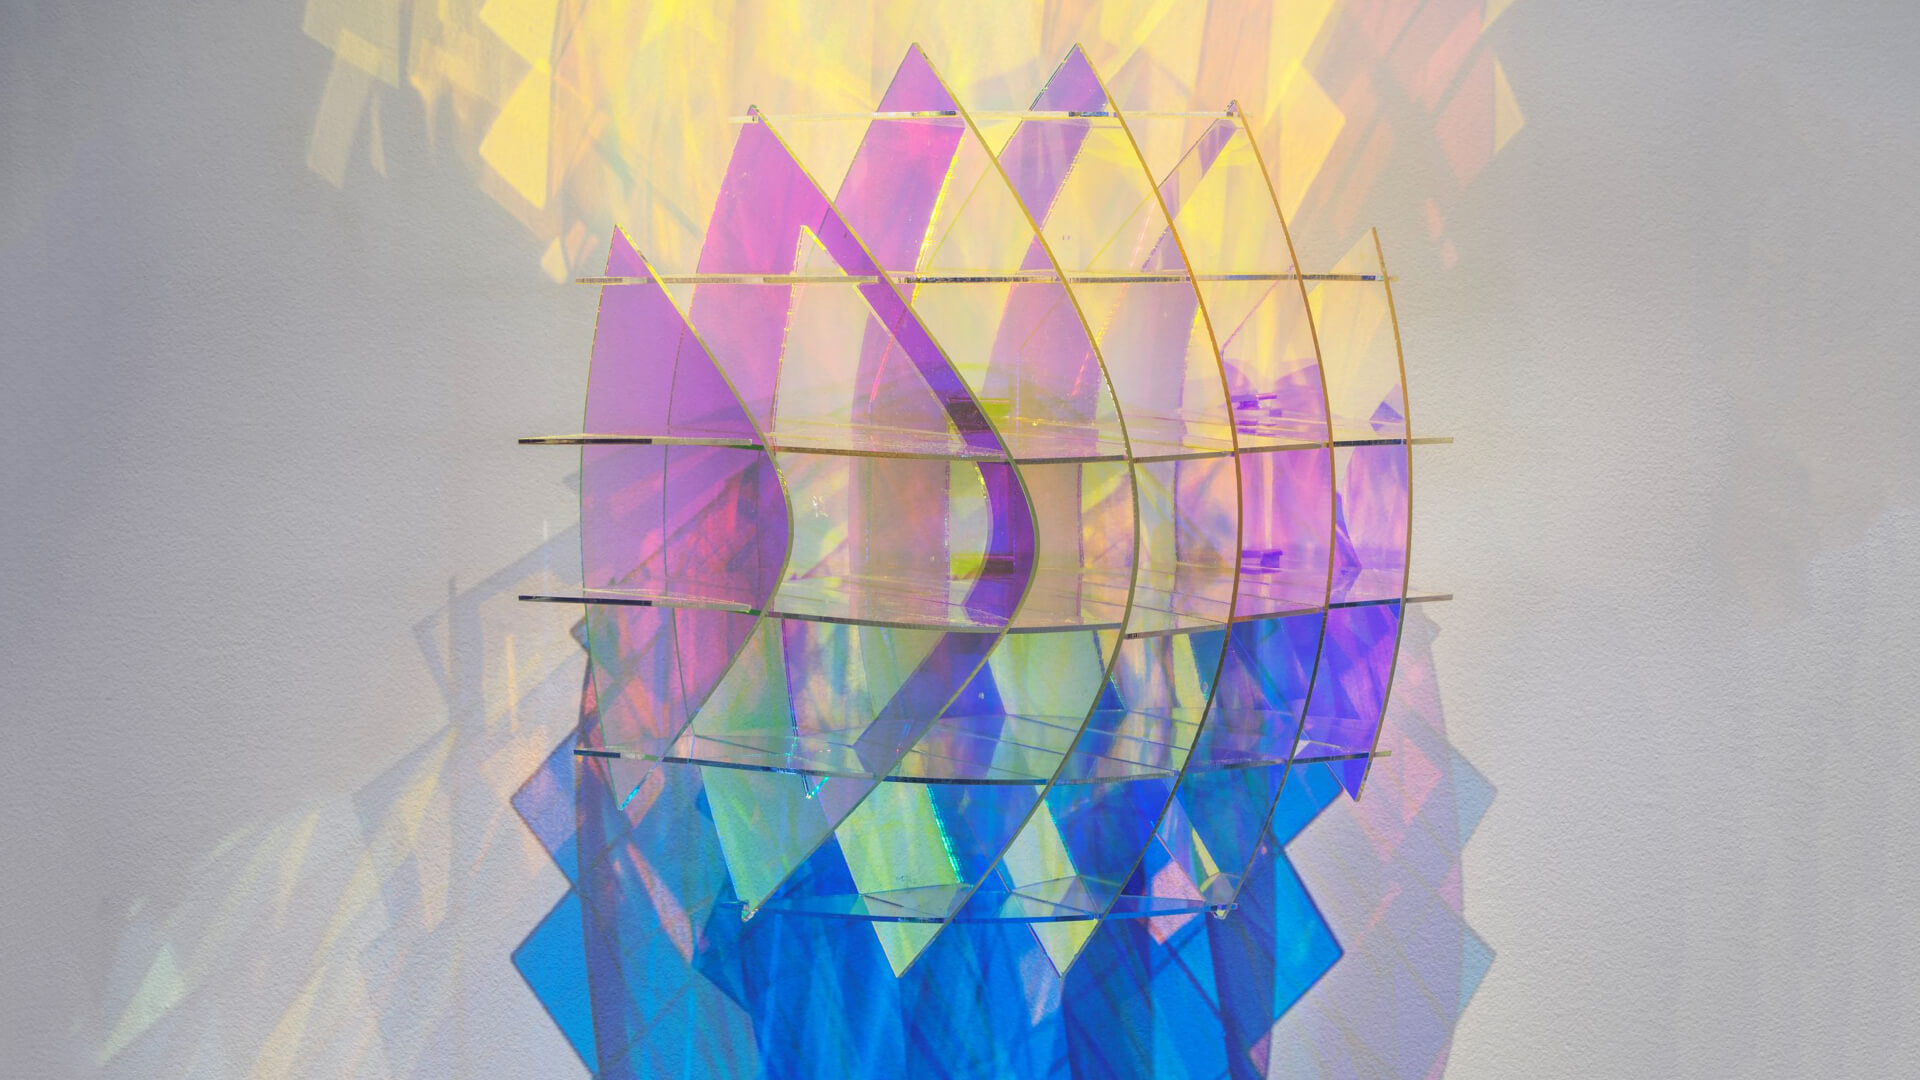 A sculptural work by Chamo from a series titled Subjective Structures plays with space and light | Sheer Appearances | Barak Chamo | STIRworld